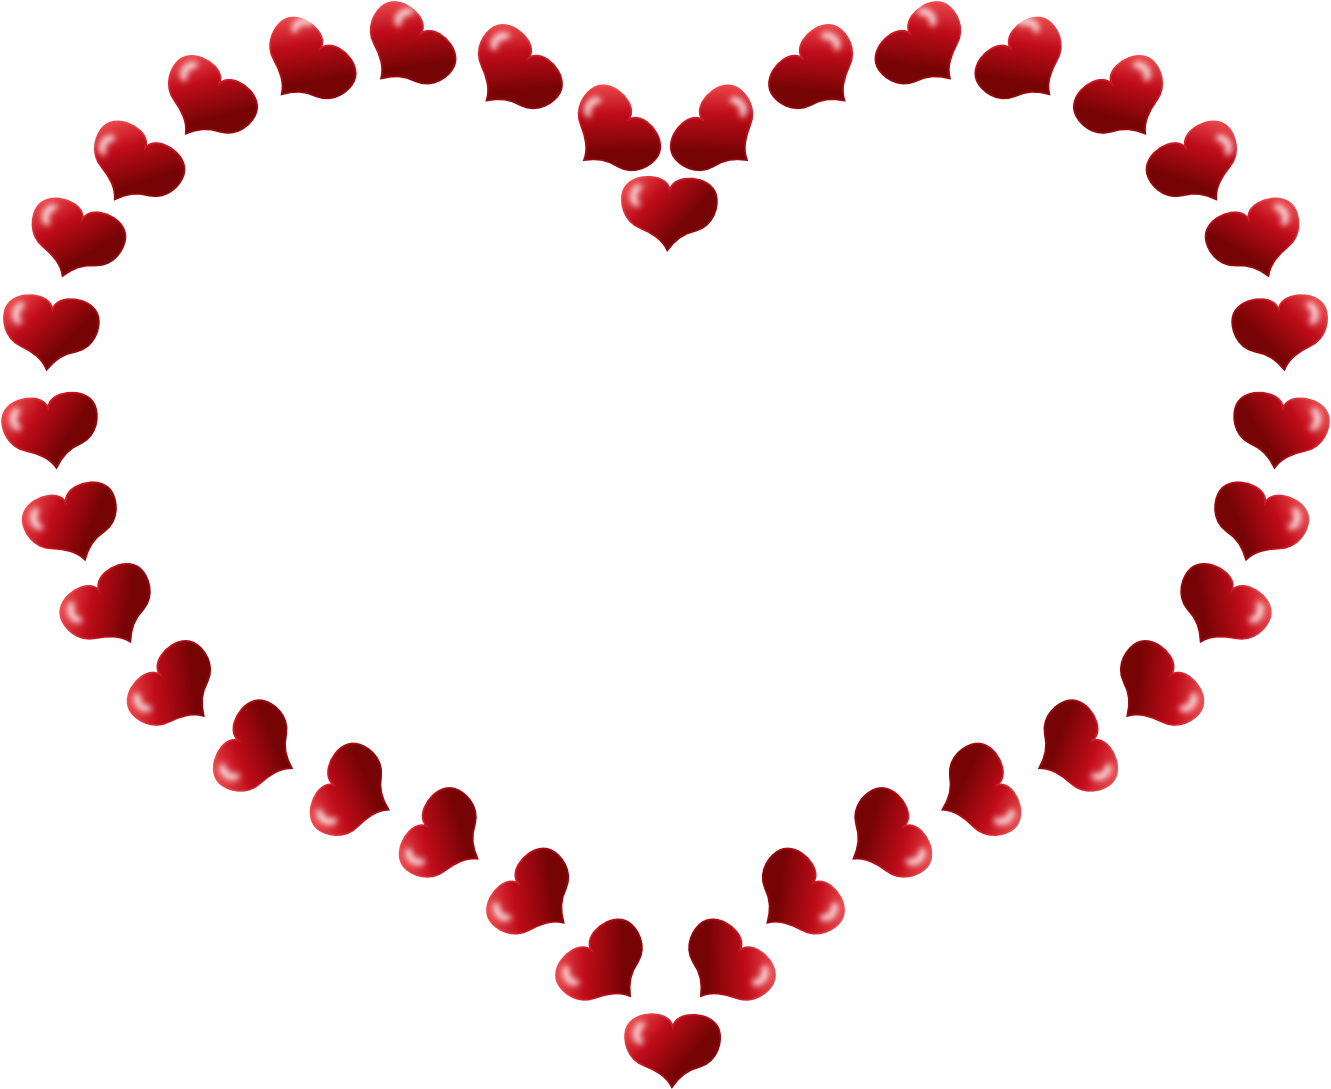 Mothers Day Red Heart Shaped Border with Little Hearts Flowers - PNG HD  Hearts And Flowers - Heart Border PNG HD